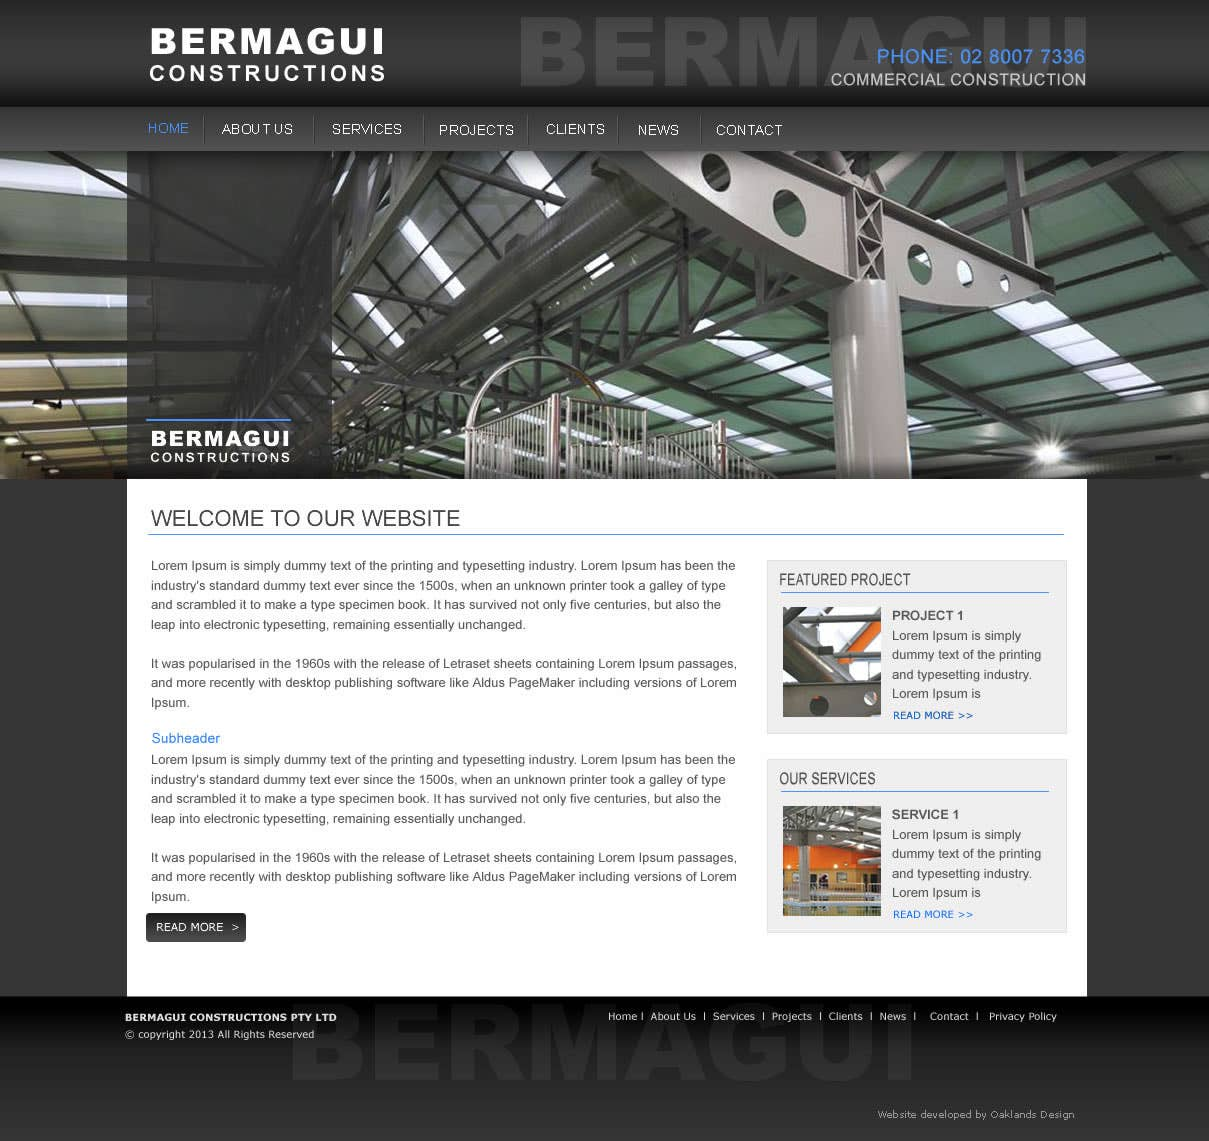 Bermagui group